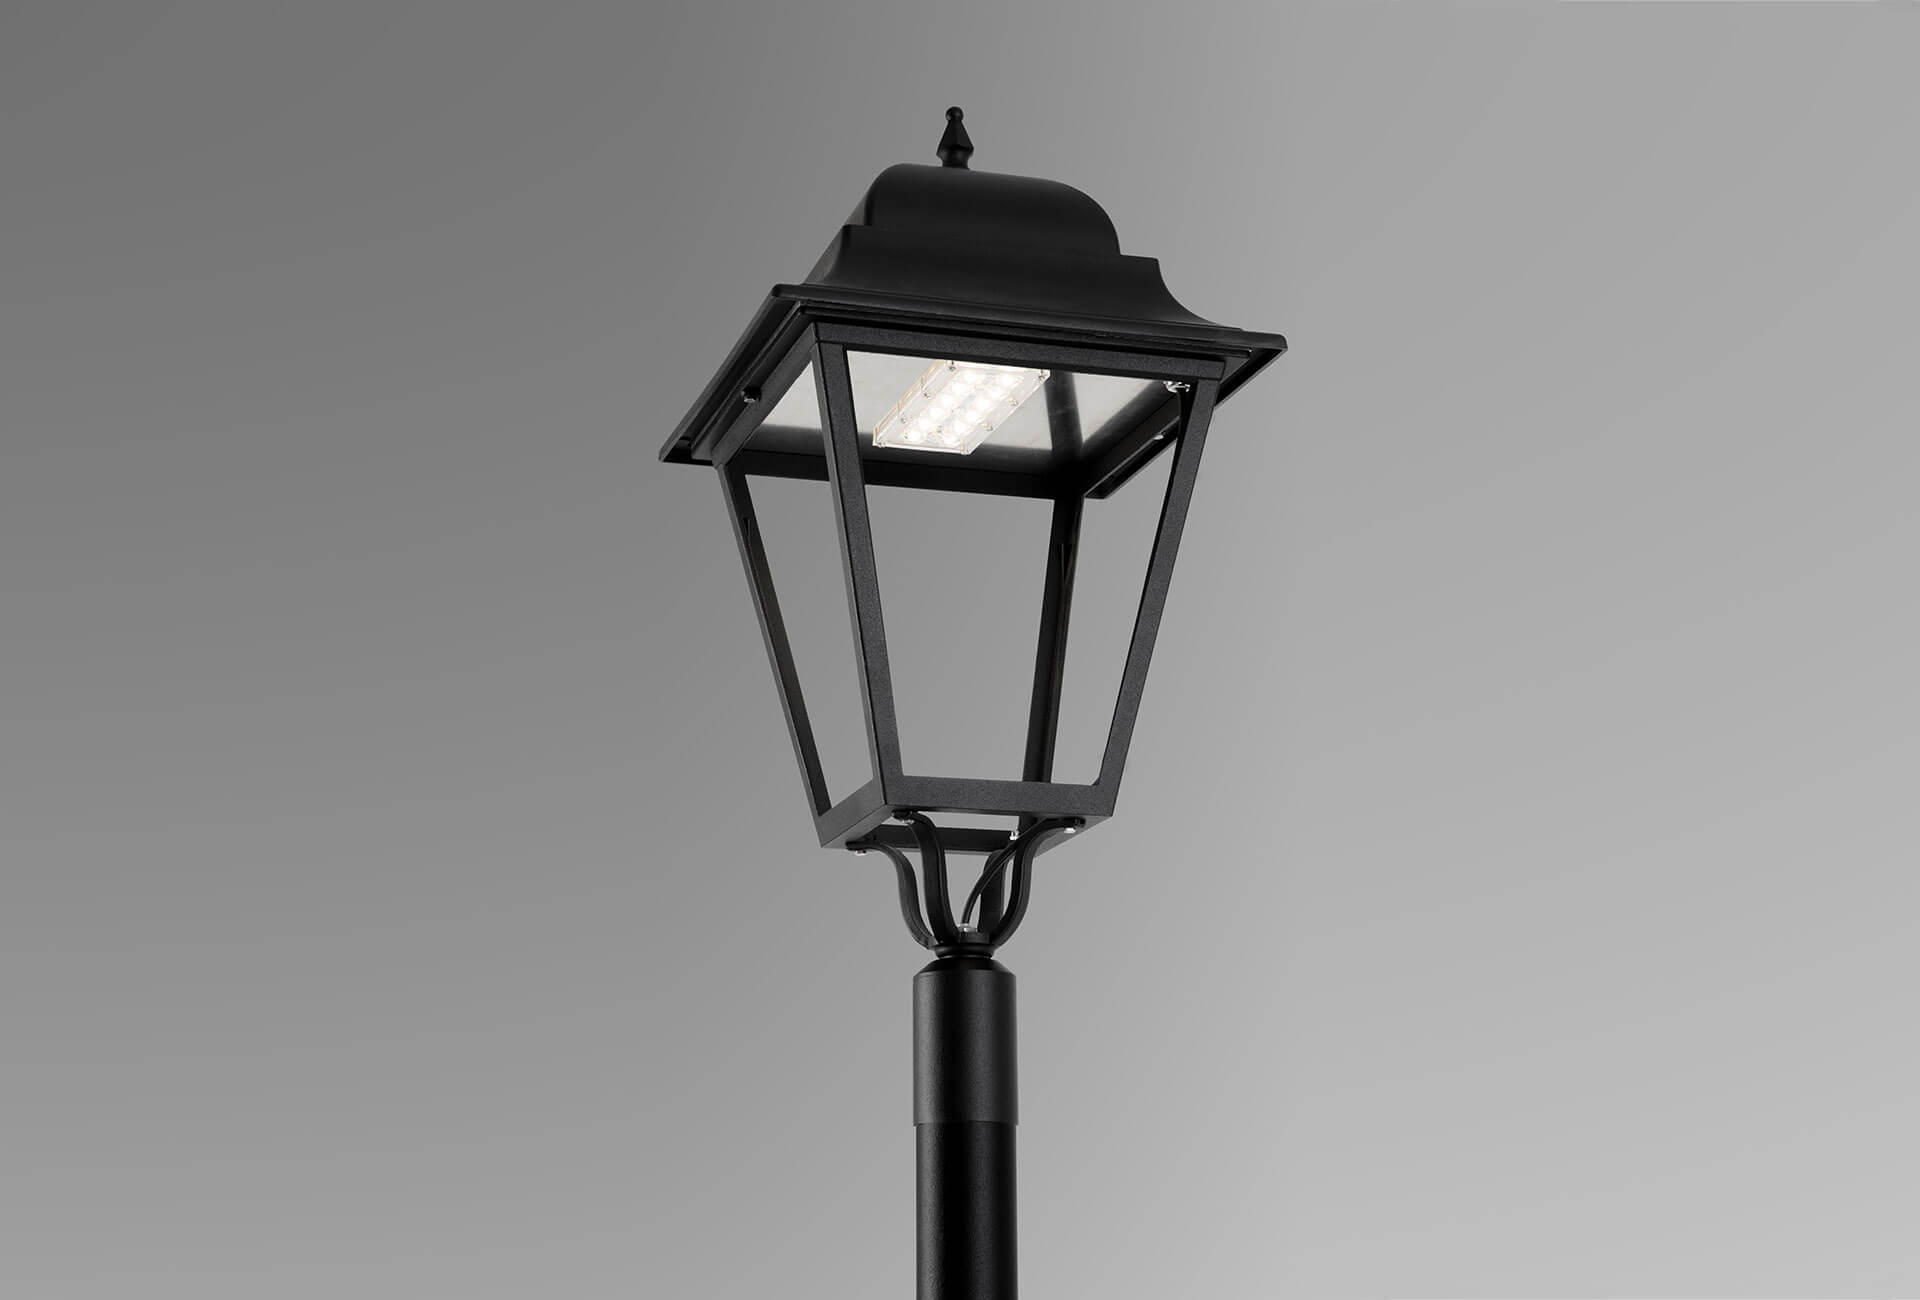 Solar Powered Outdoor Lantern Lights